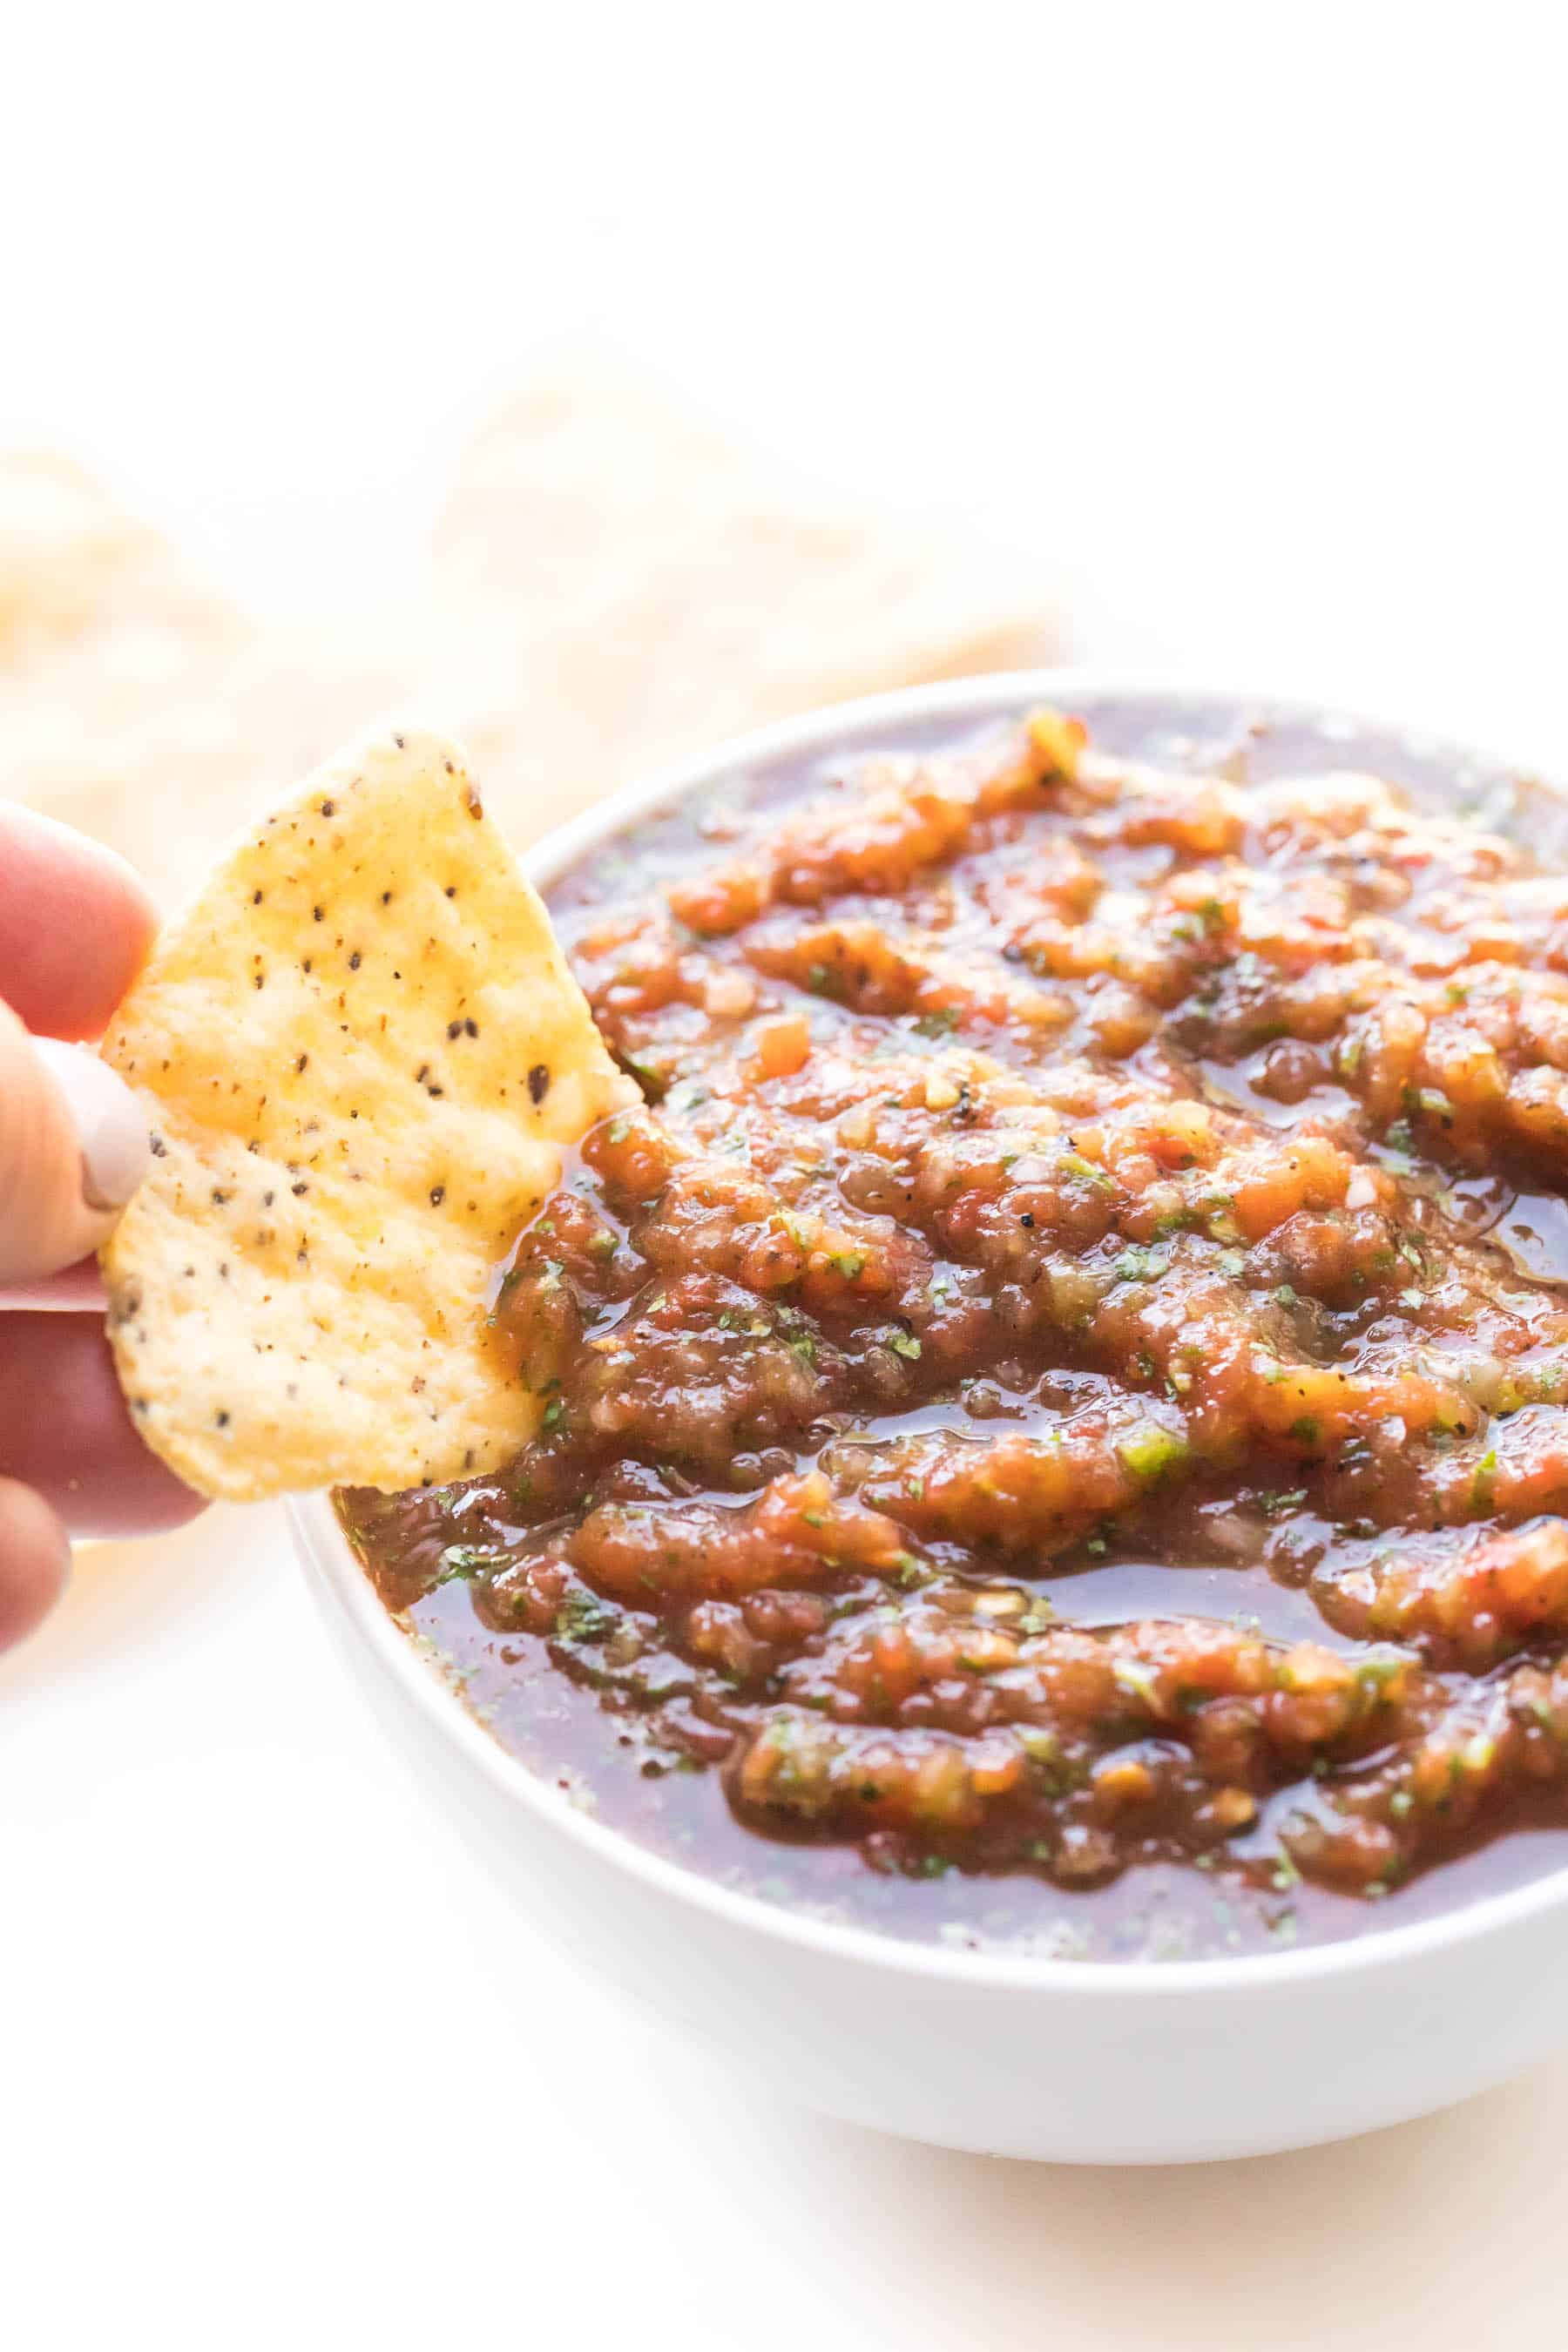 hand dipping a chip in homemade red salsa in a white bowl on a white background